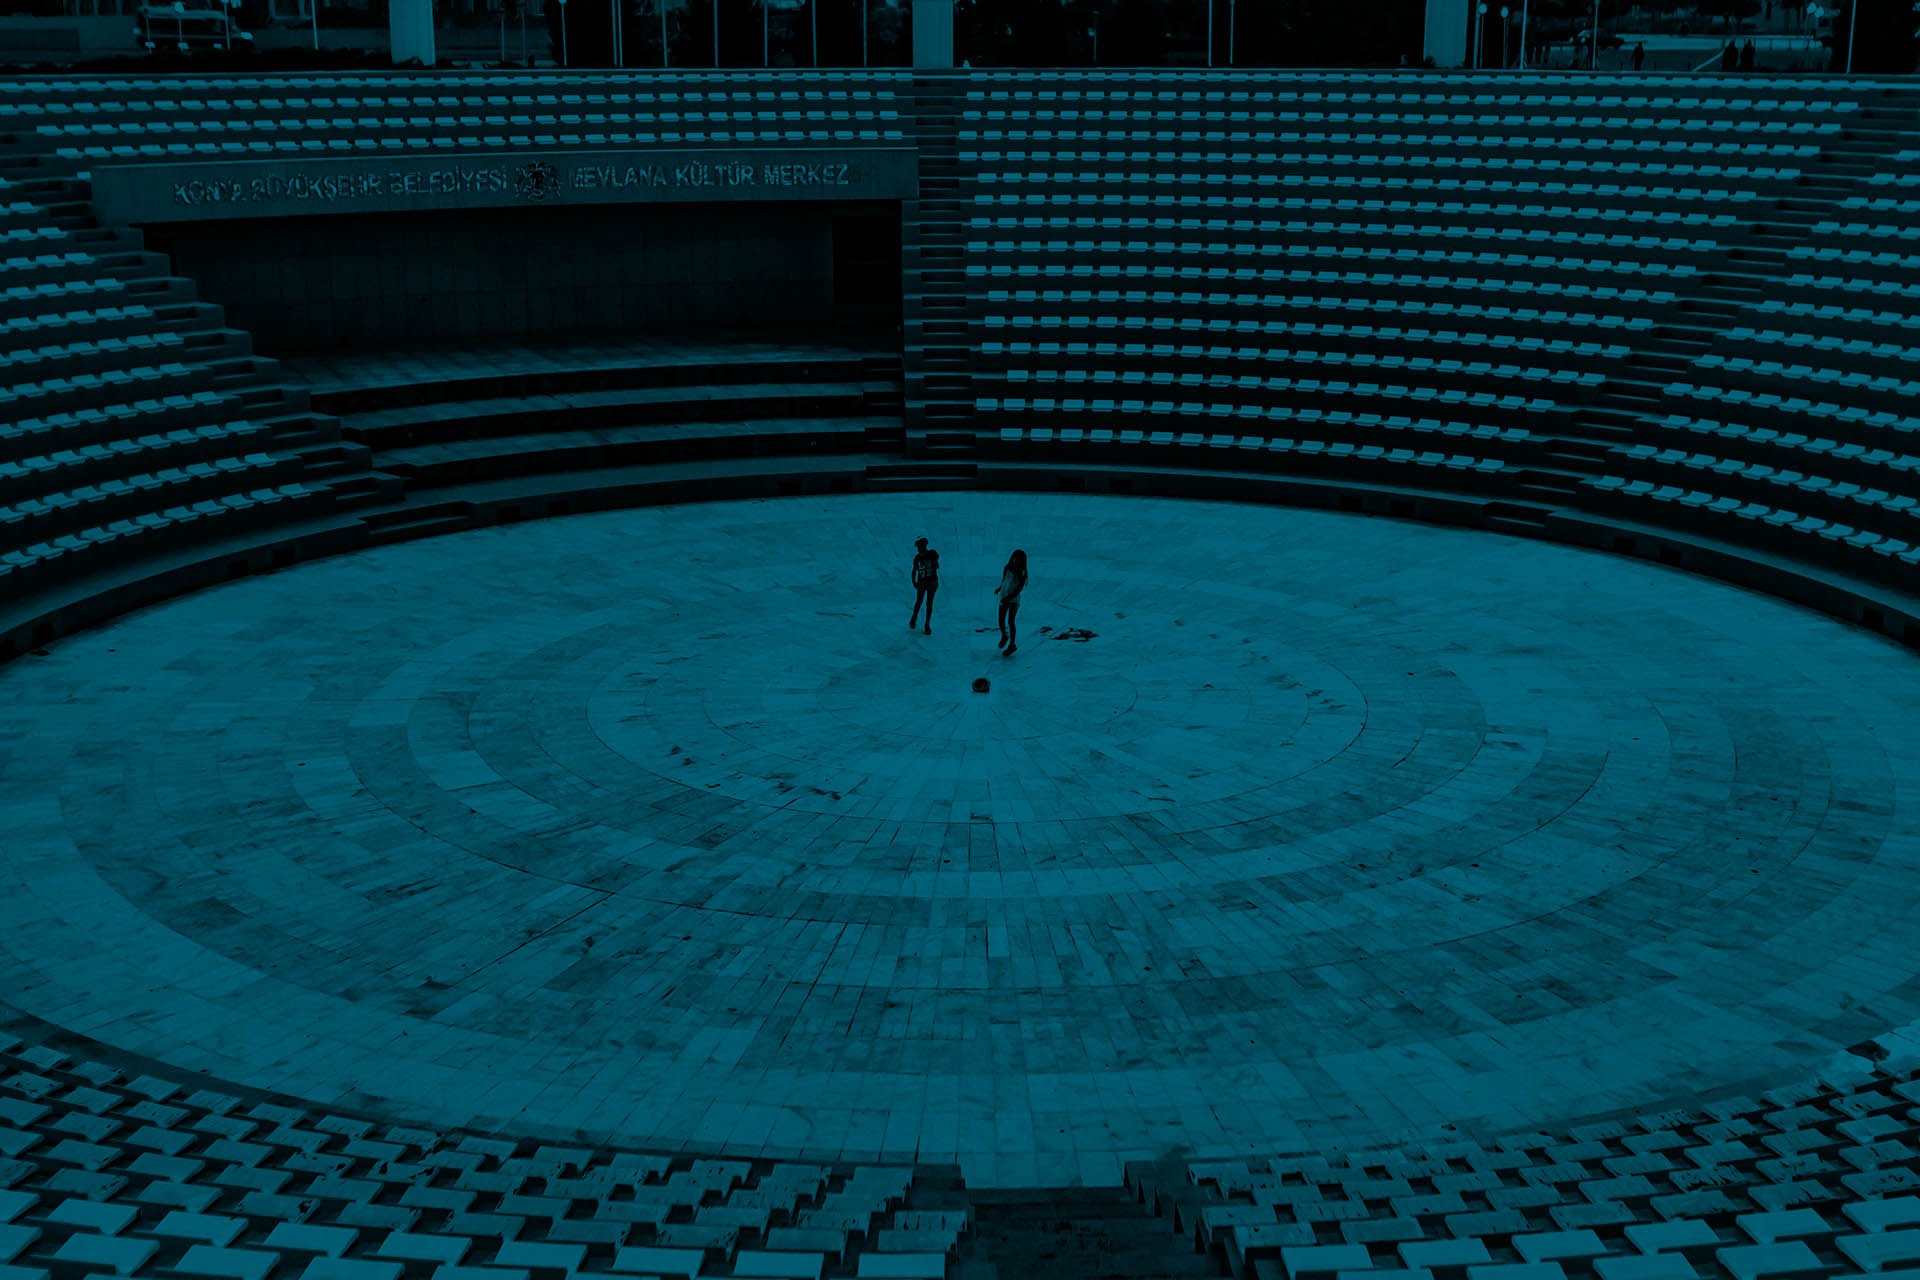 Two children standing in the center of a a round colloseum-like stage in front of empty seats.